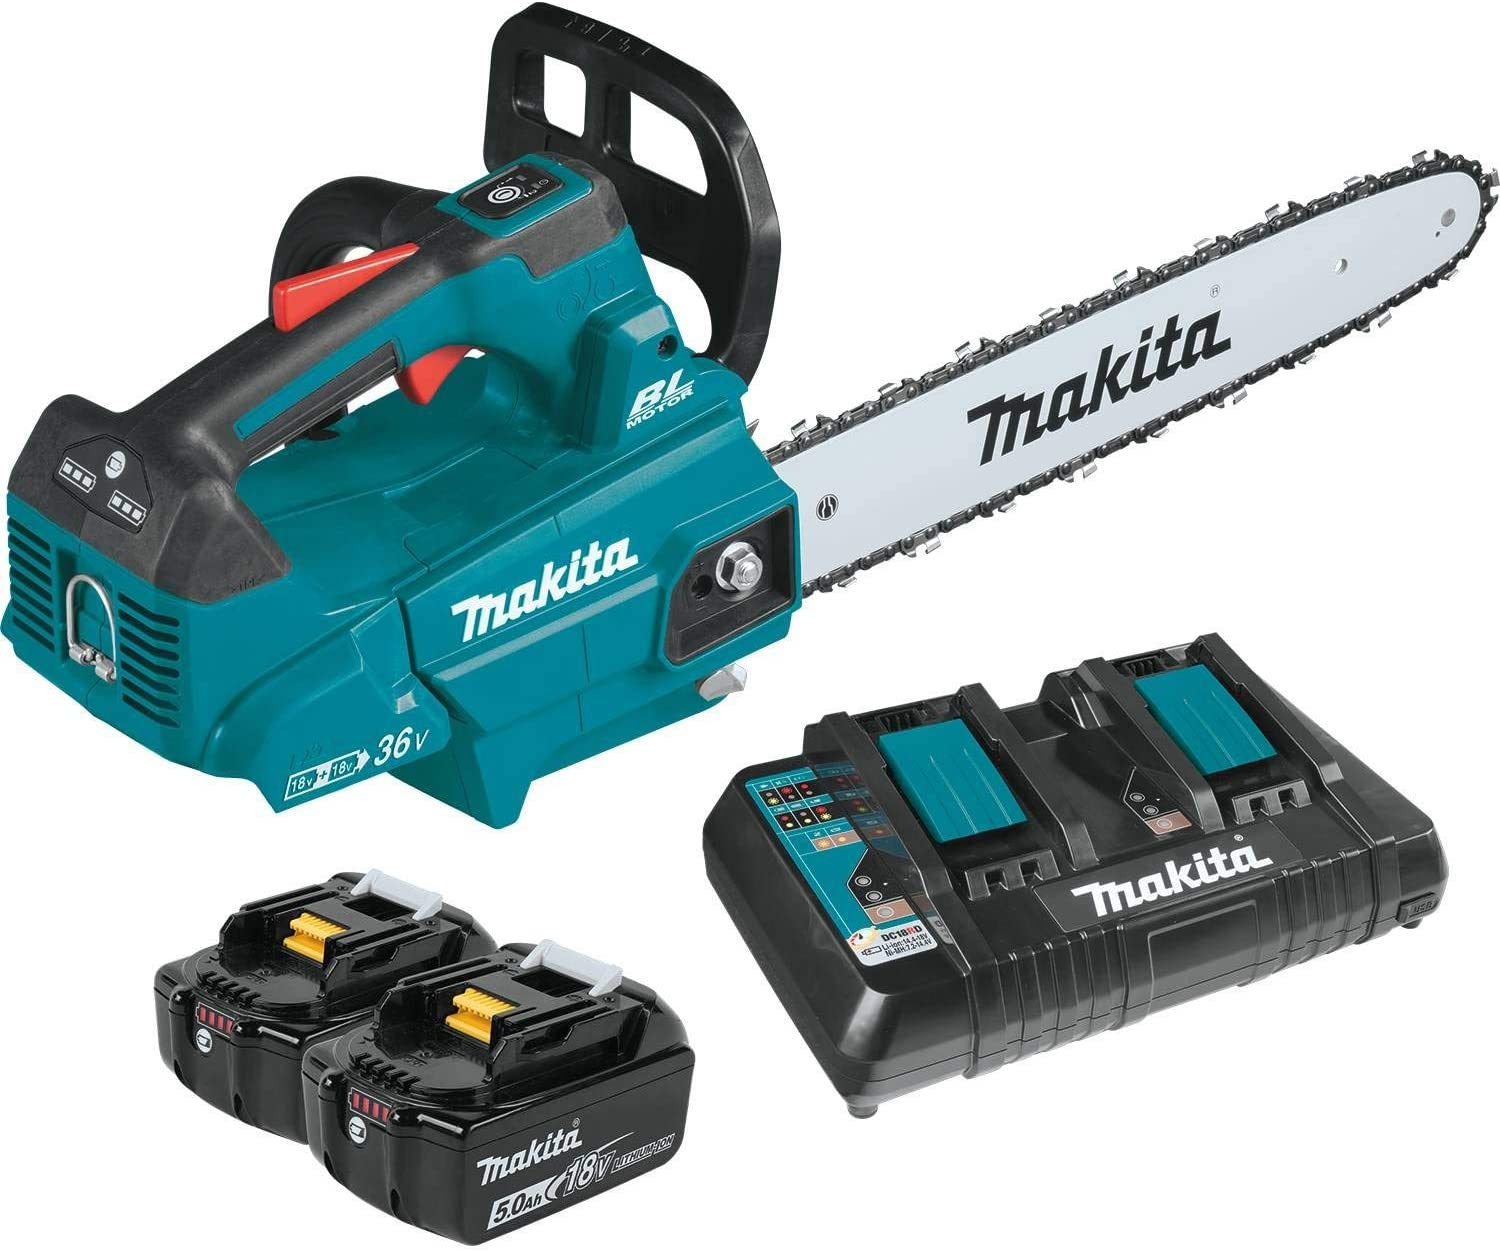 5. Makita XCU09PT Lithium-Ion Brushless Cordless Chainsaw